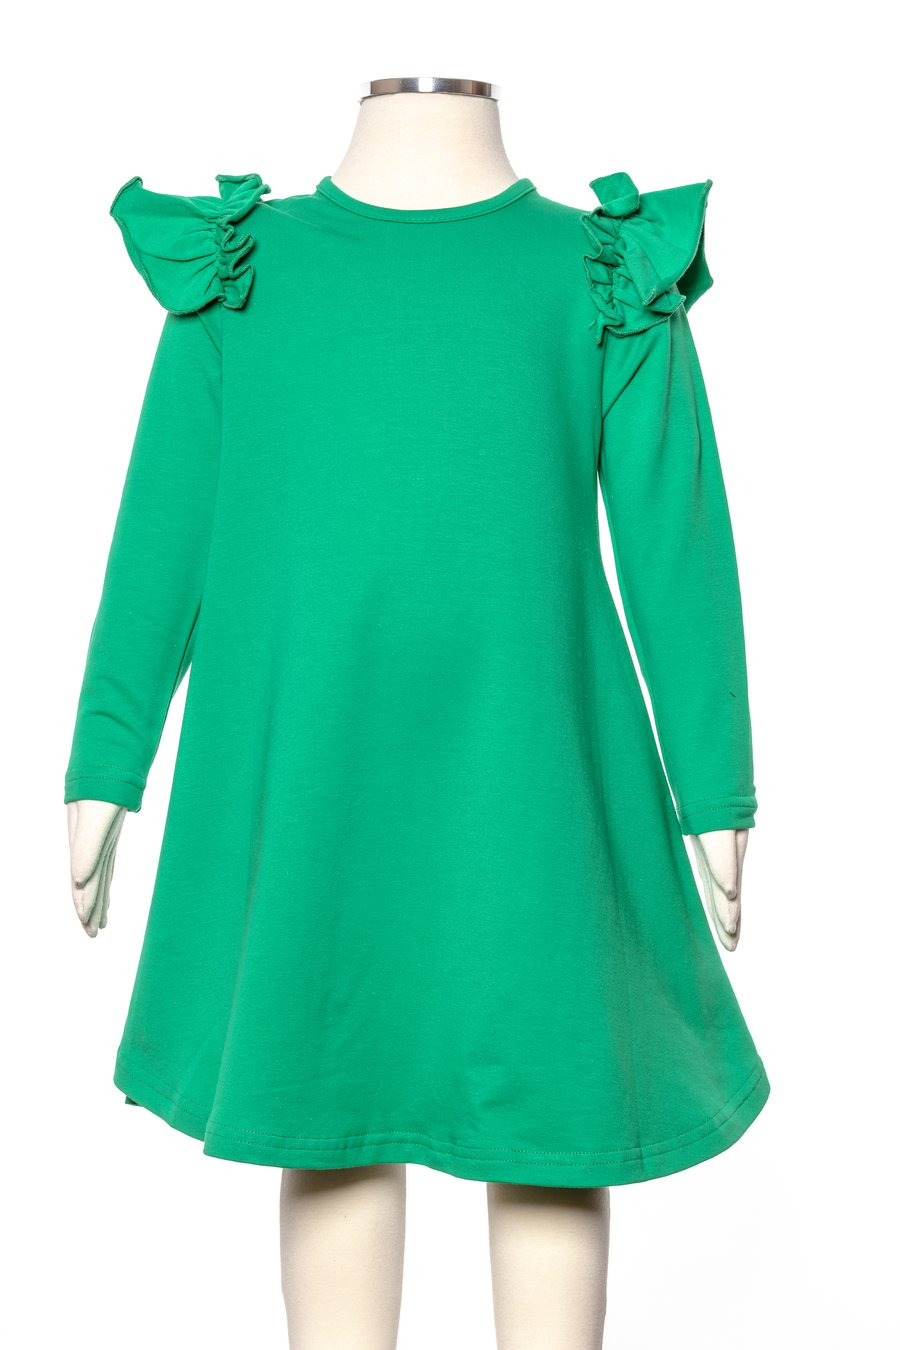 M.L. Kids St. Patrick's Day Dress